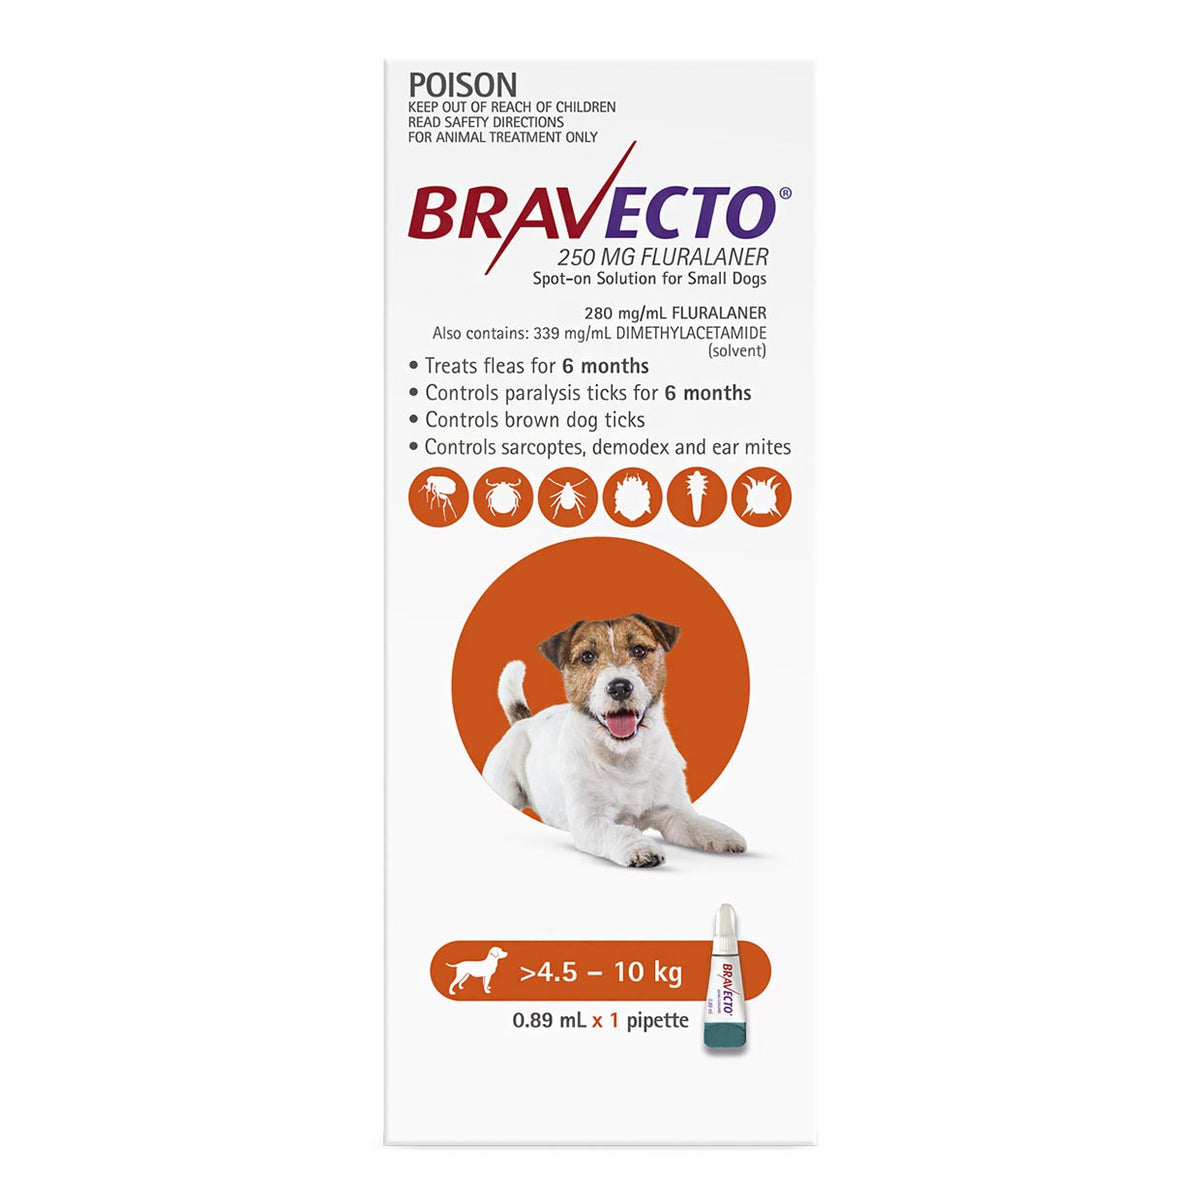 Bravecto Spot-on for Dogs 4.5kg-10kg (Orange) - 6 Month Flea and Tick Protection